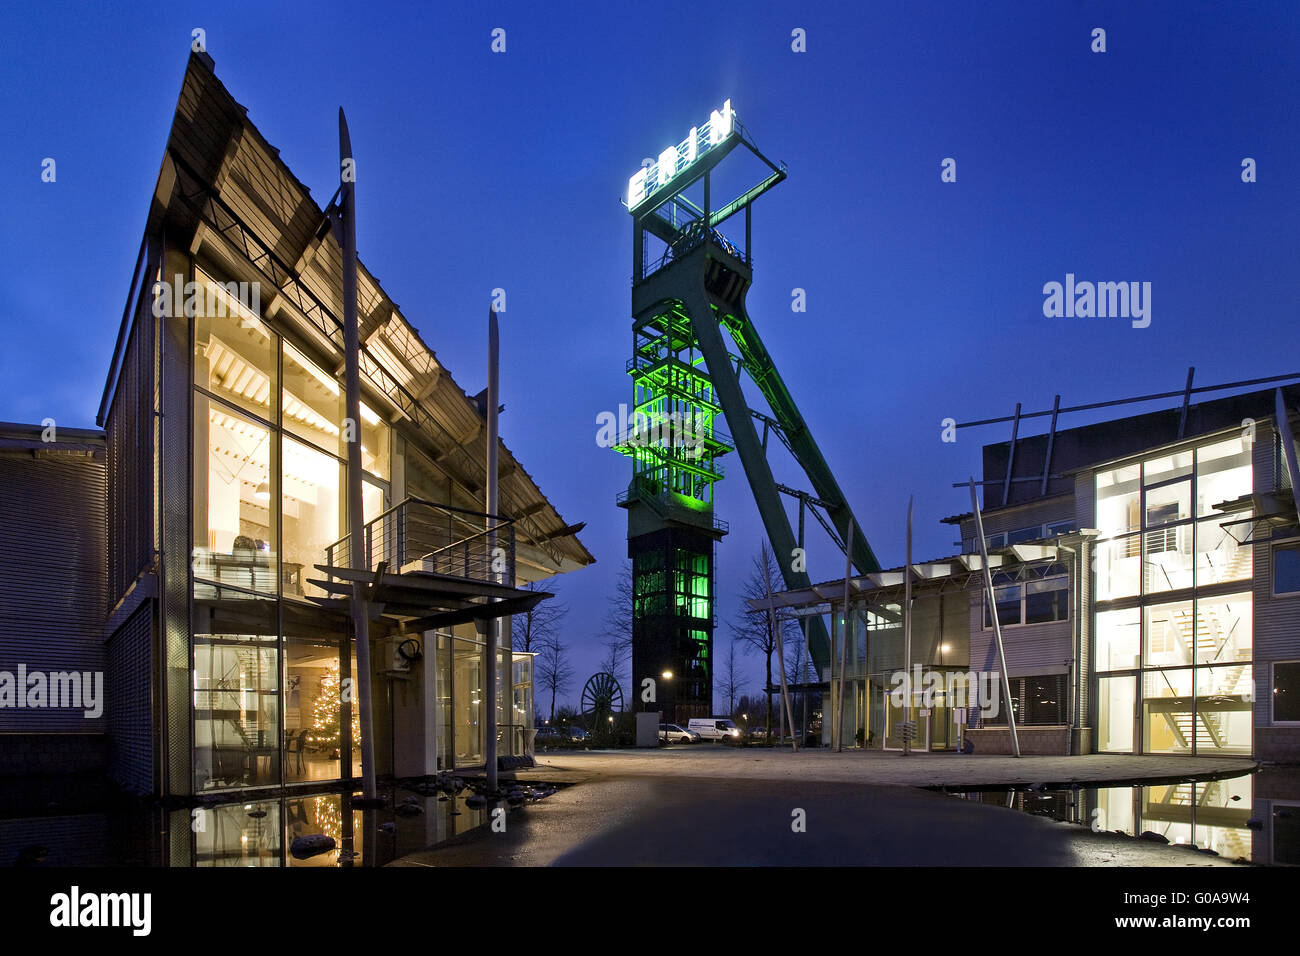 Former coal mine Erin, Castrop-Rauxel, Germany - Stock Image